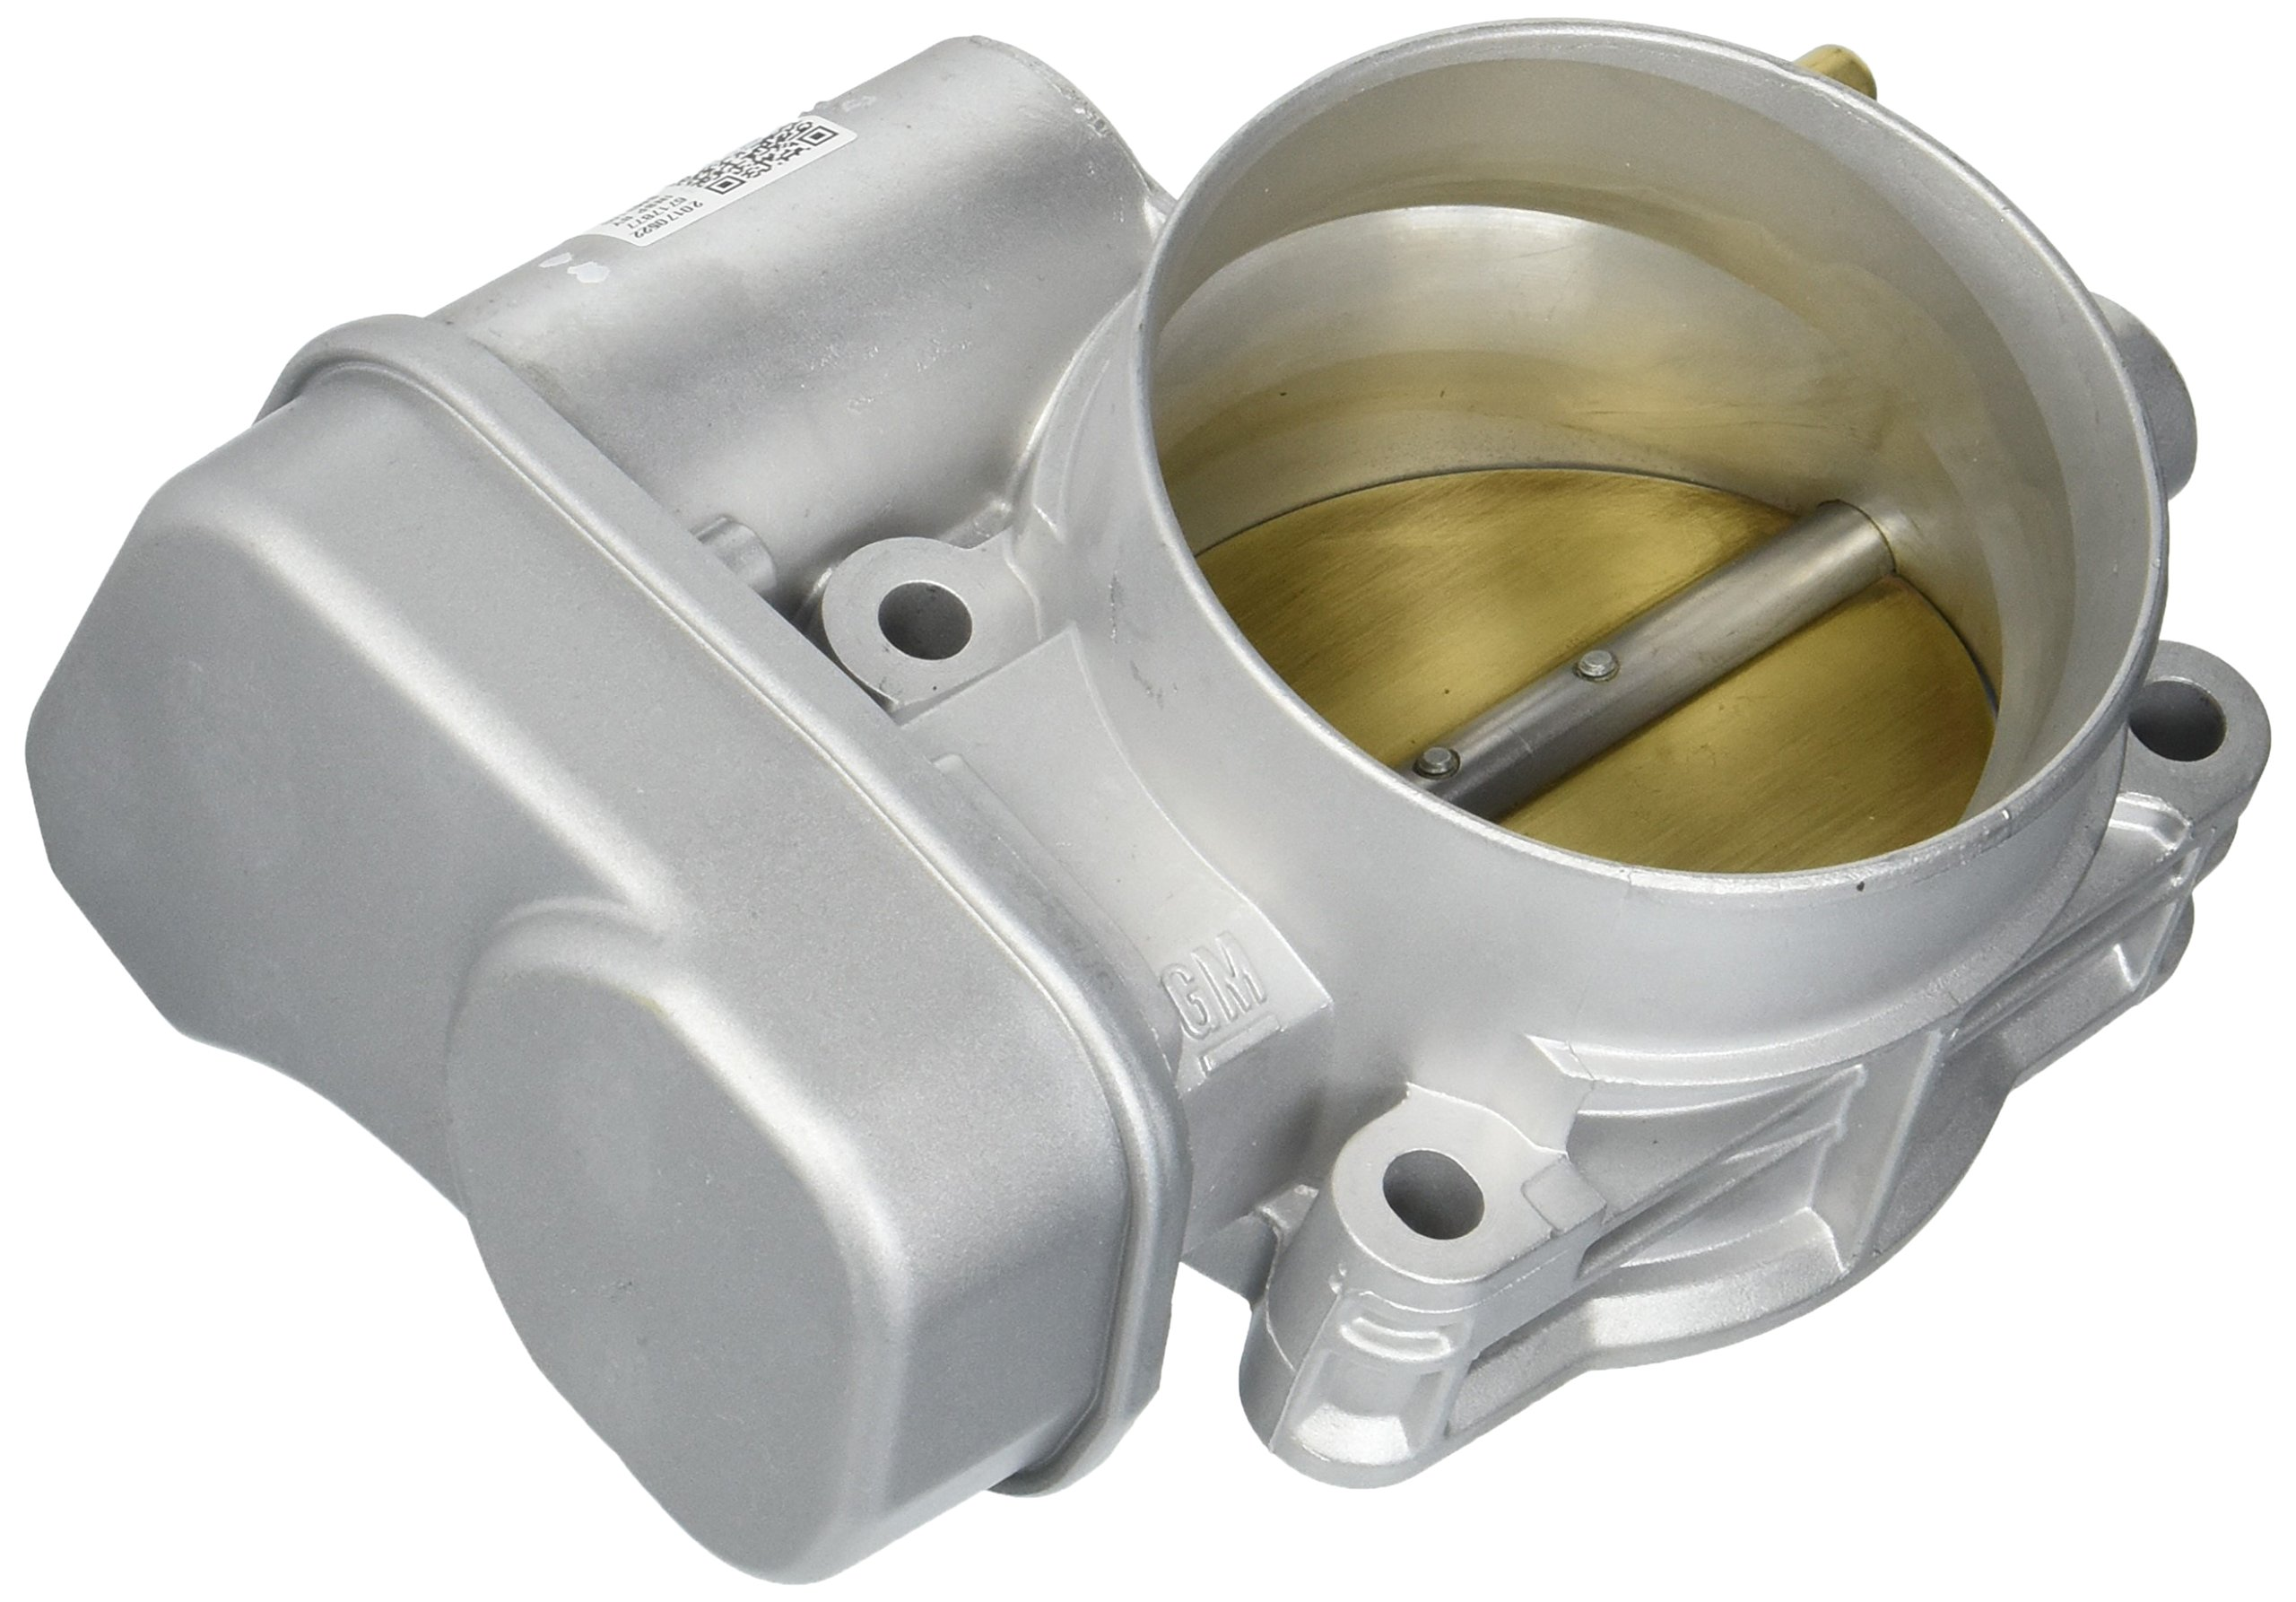 A1 Cardone 67-3009 Remanufactured Throttle Body, 1 Pack by A1 Cardone